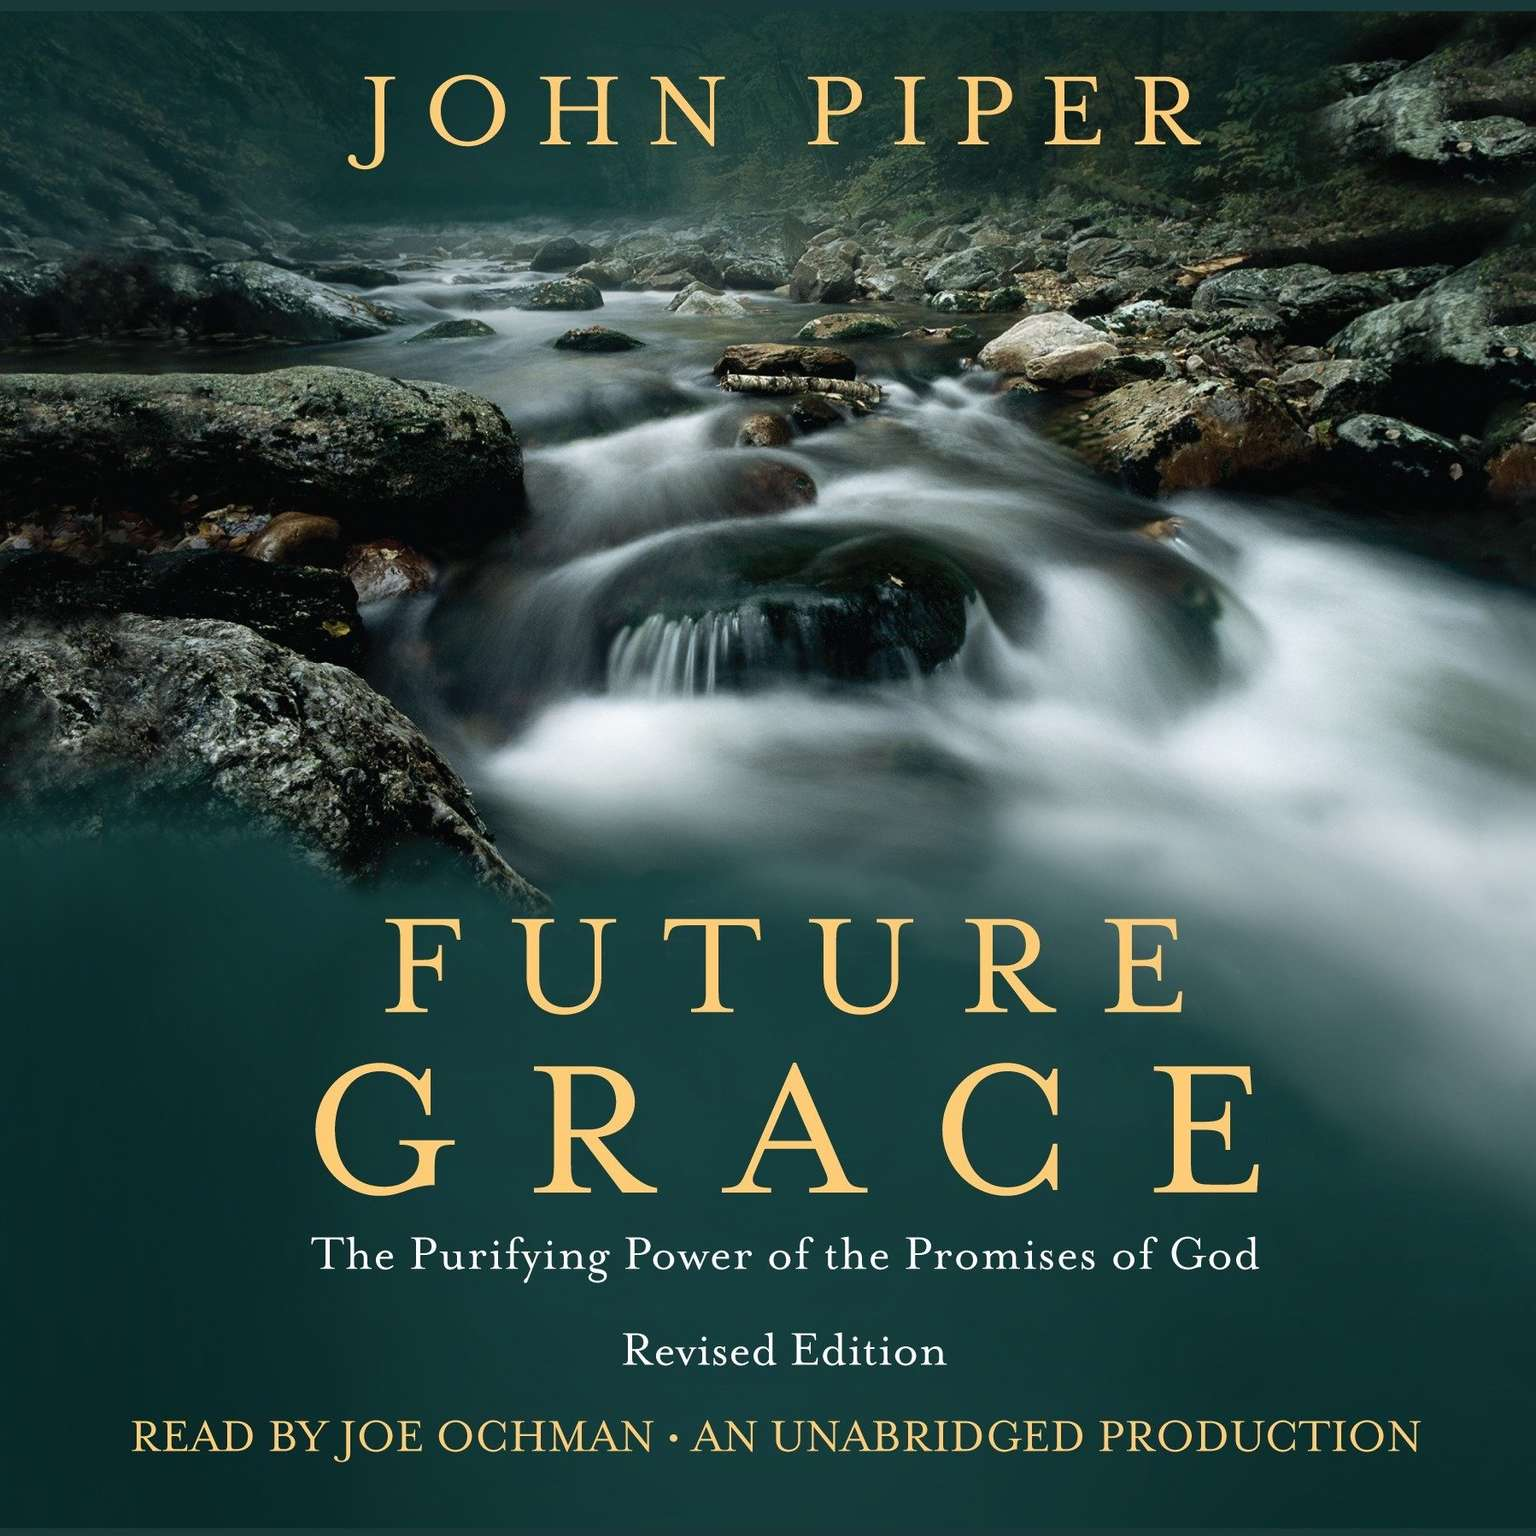 Printable Future Grace: The Purifying Power of the Promises of God Audiobook Cover Art